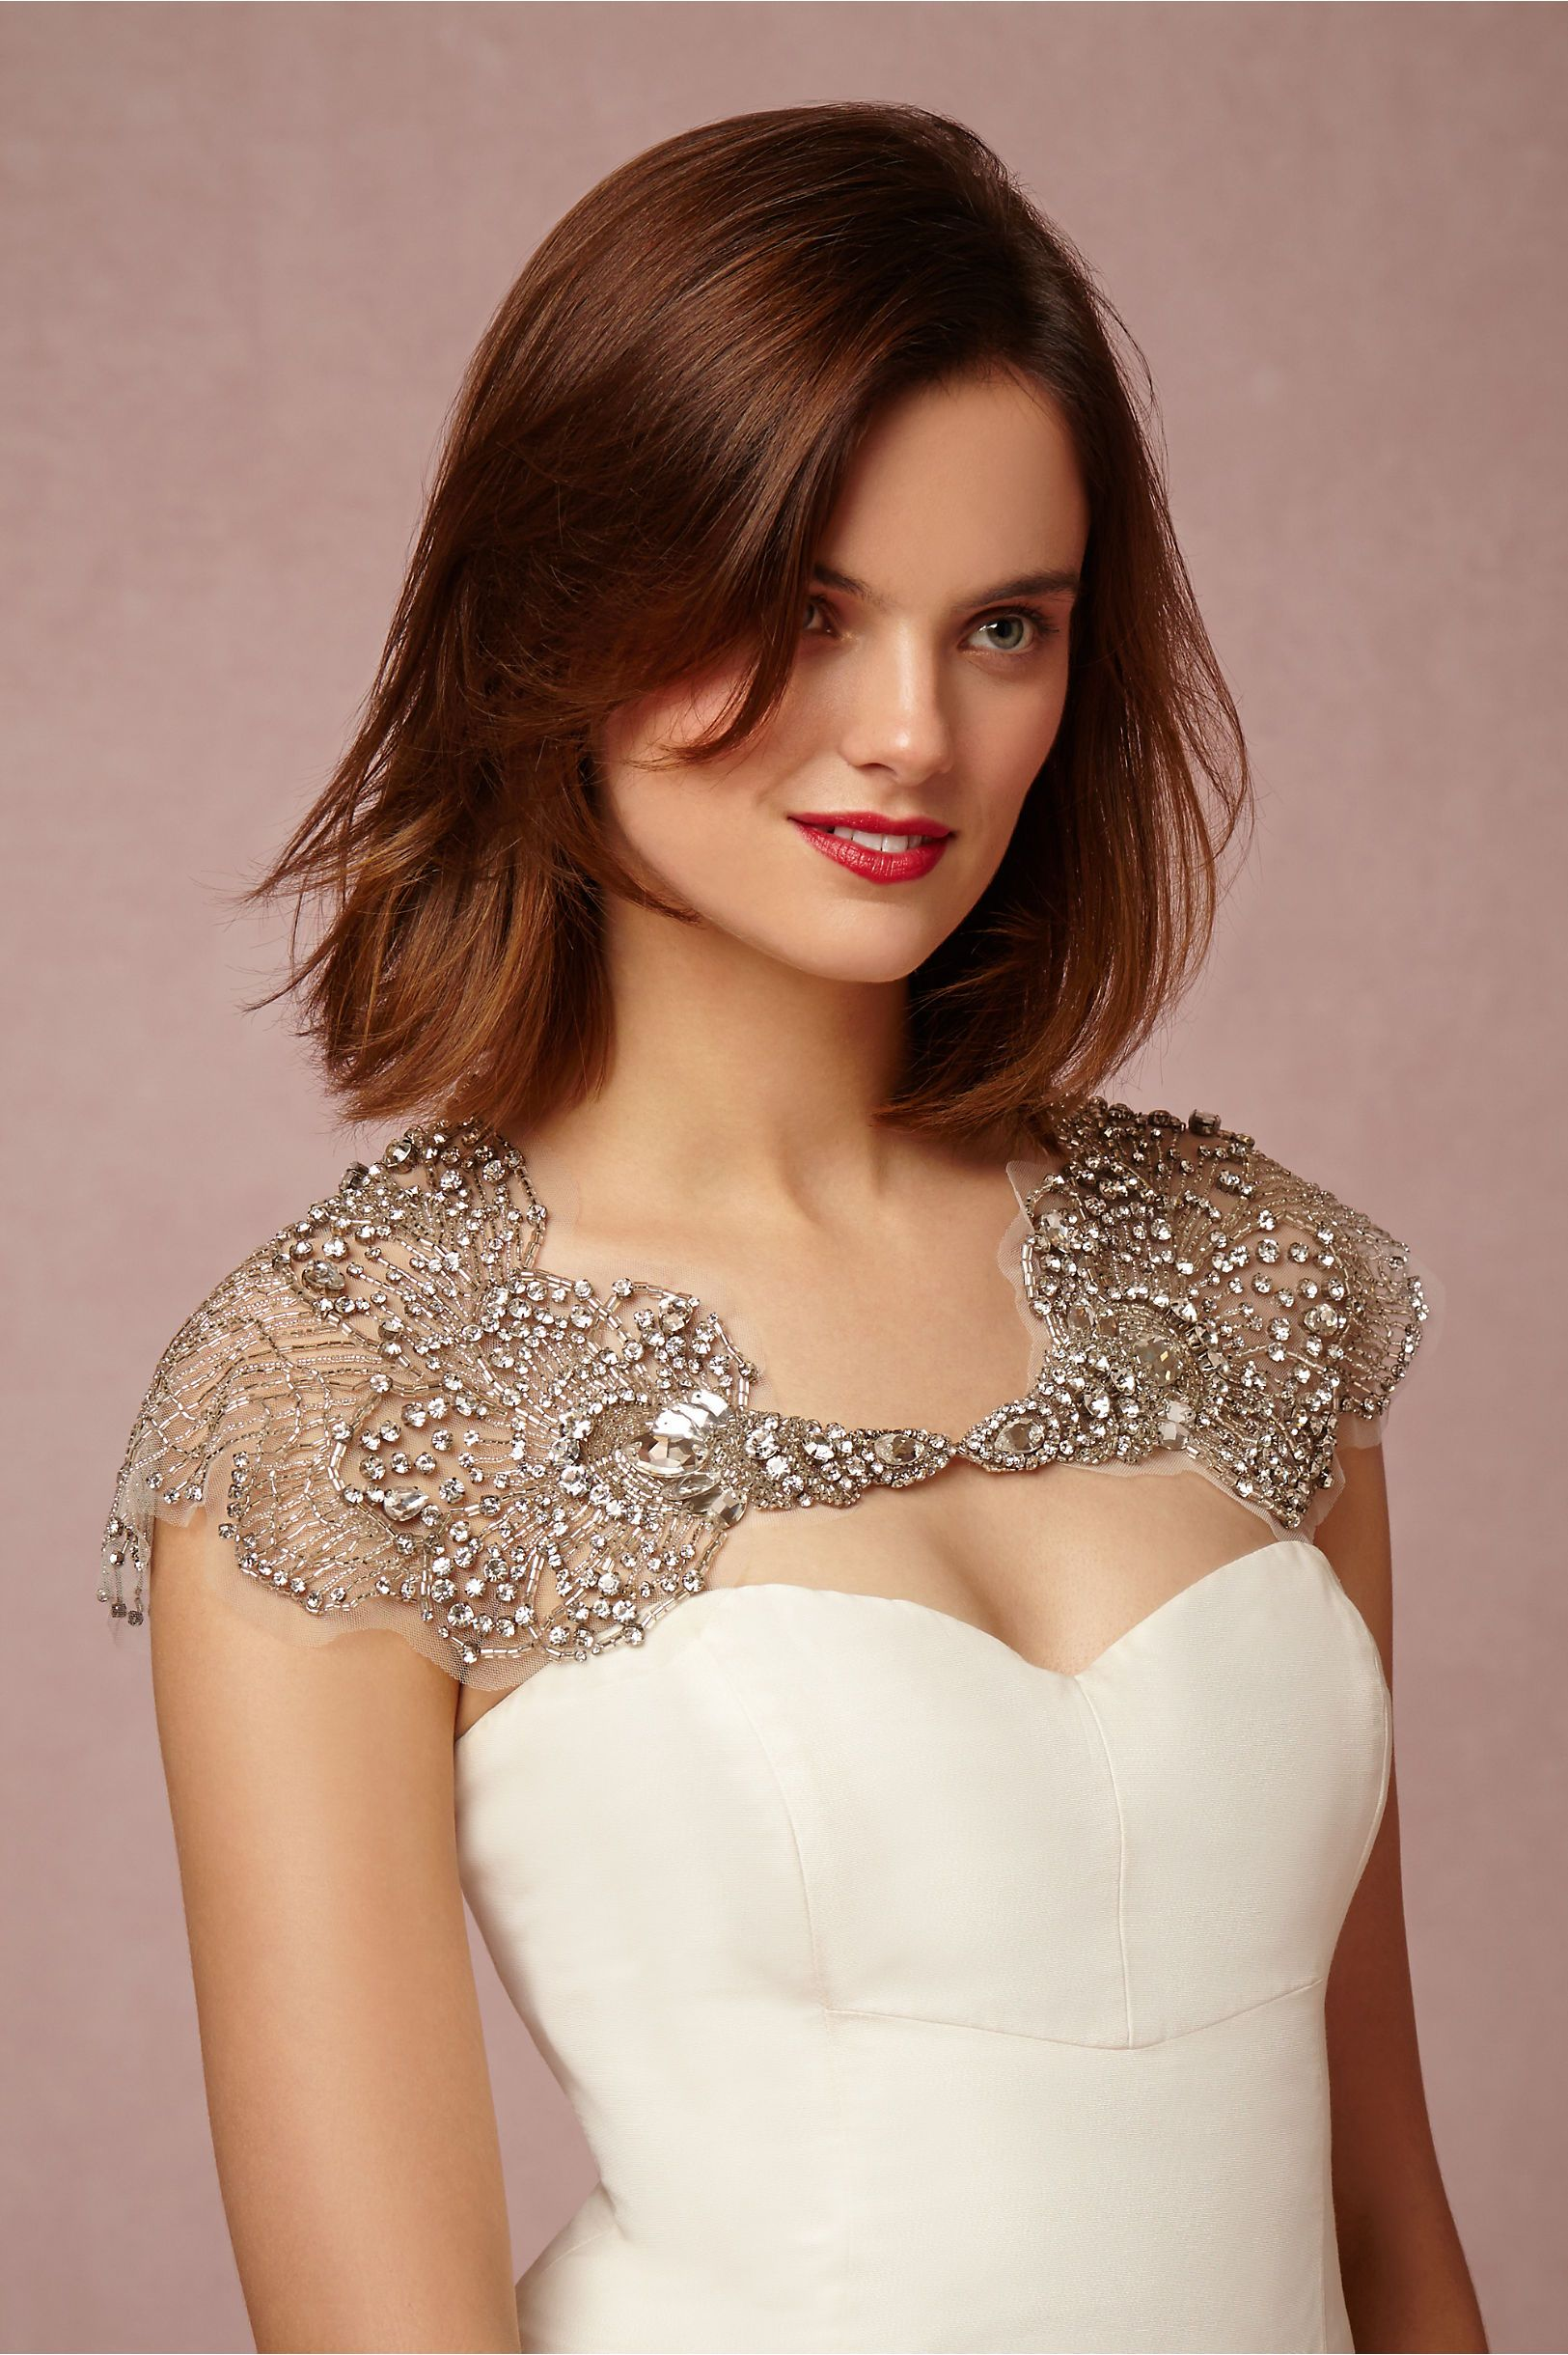 Phoenix capelet in bride bridal cover ups at bhldn do i like this phoenix capelet in bride bridal cover ups at bhldn do i like this lol junglespirit Gallery